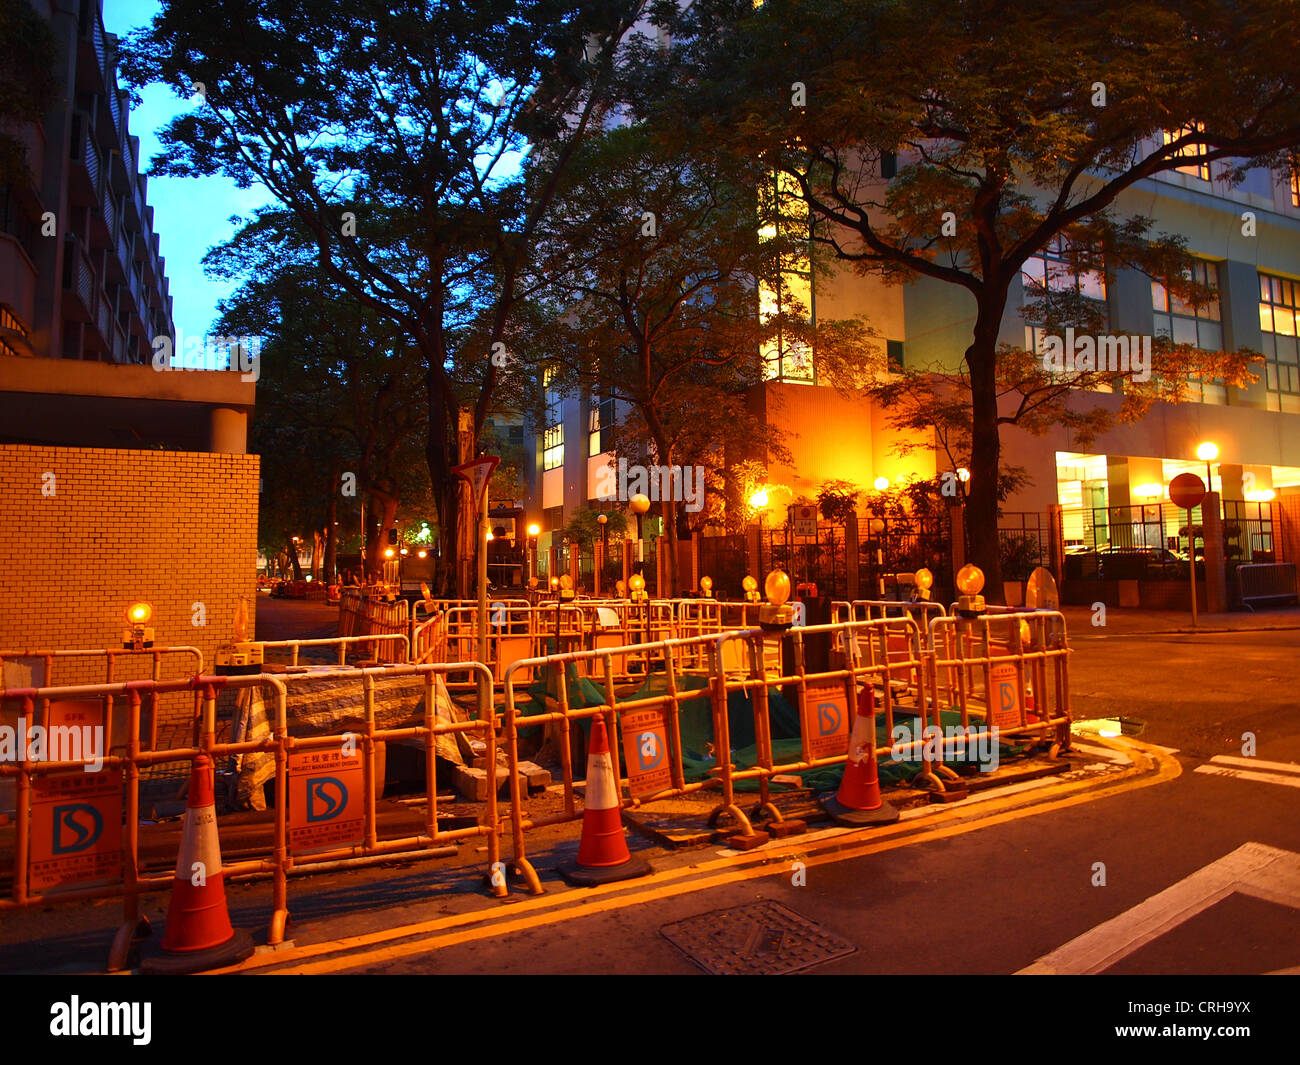 Urban sense at night - Stock Image